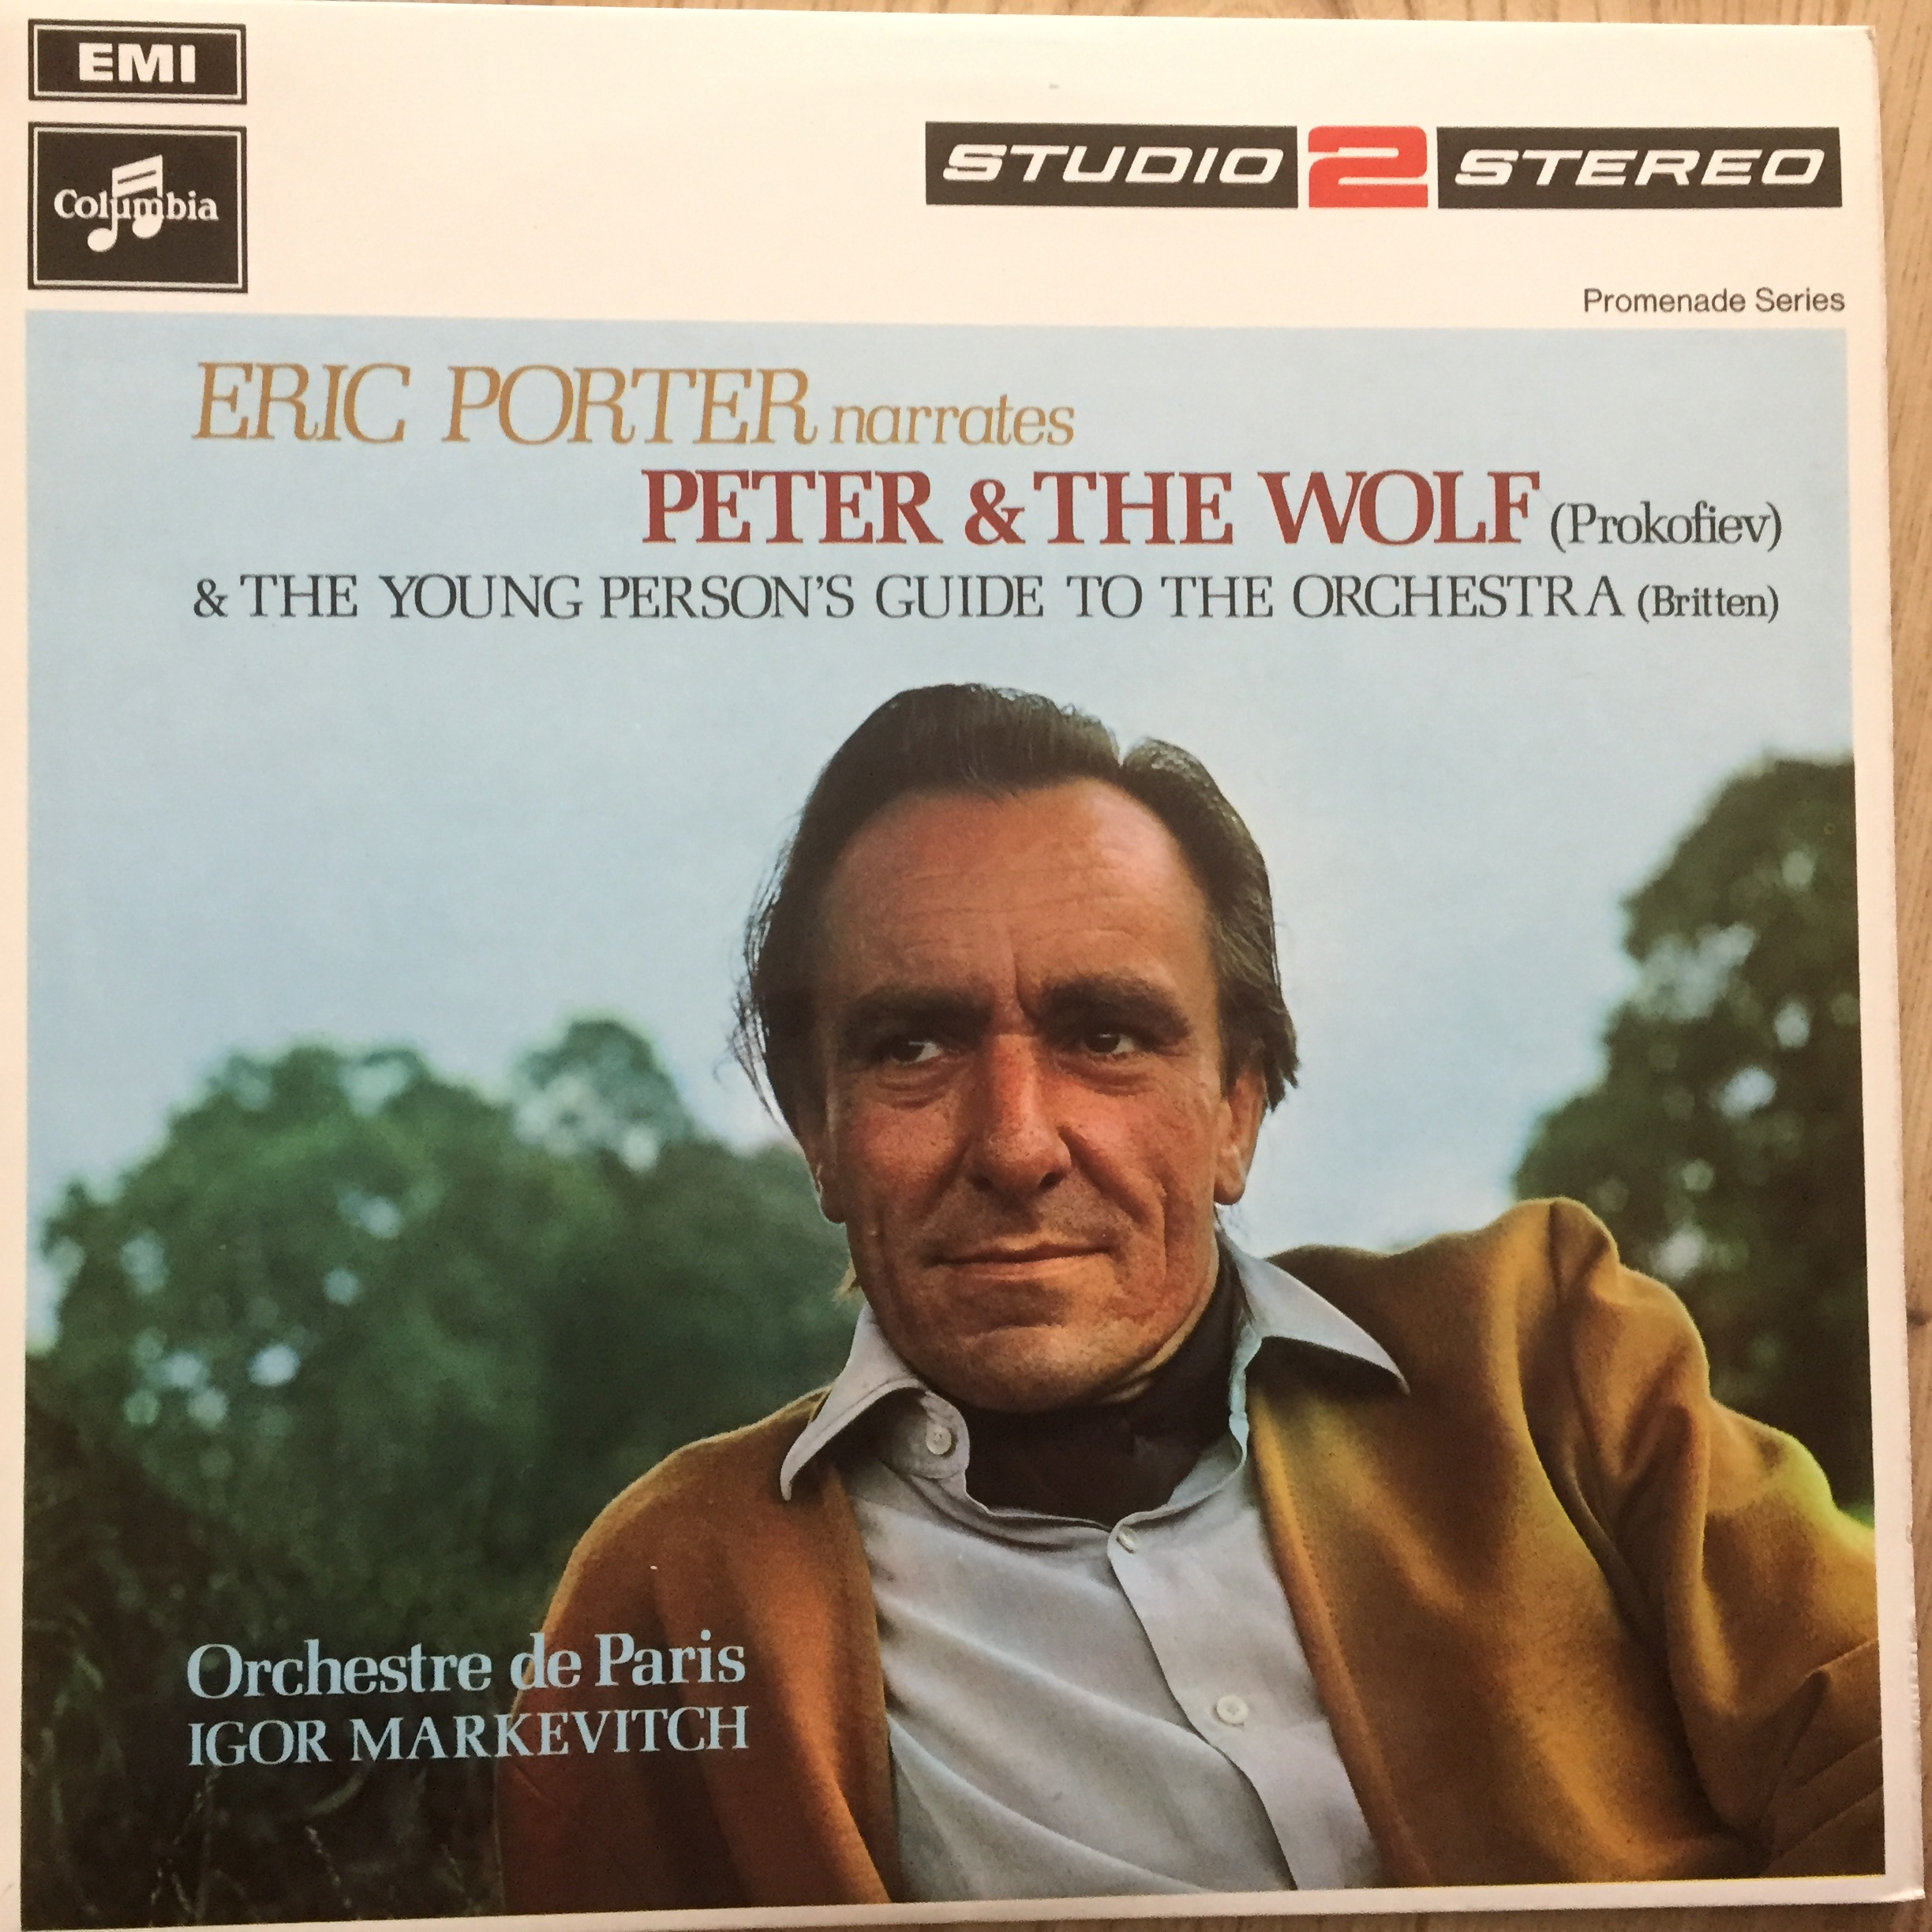 TWO 259 Prokofiev Peter & The Wolf